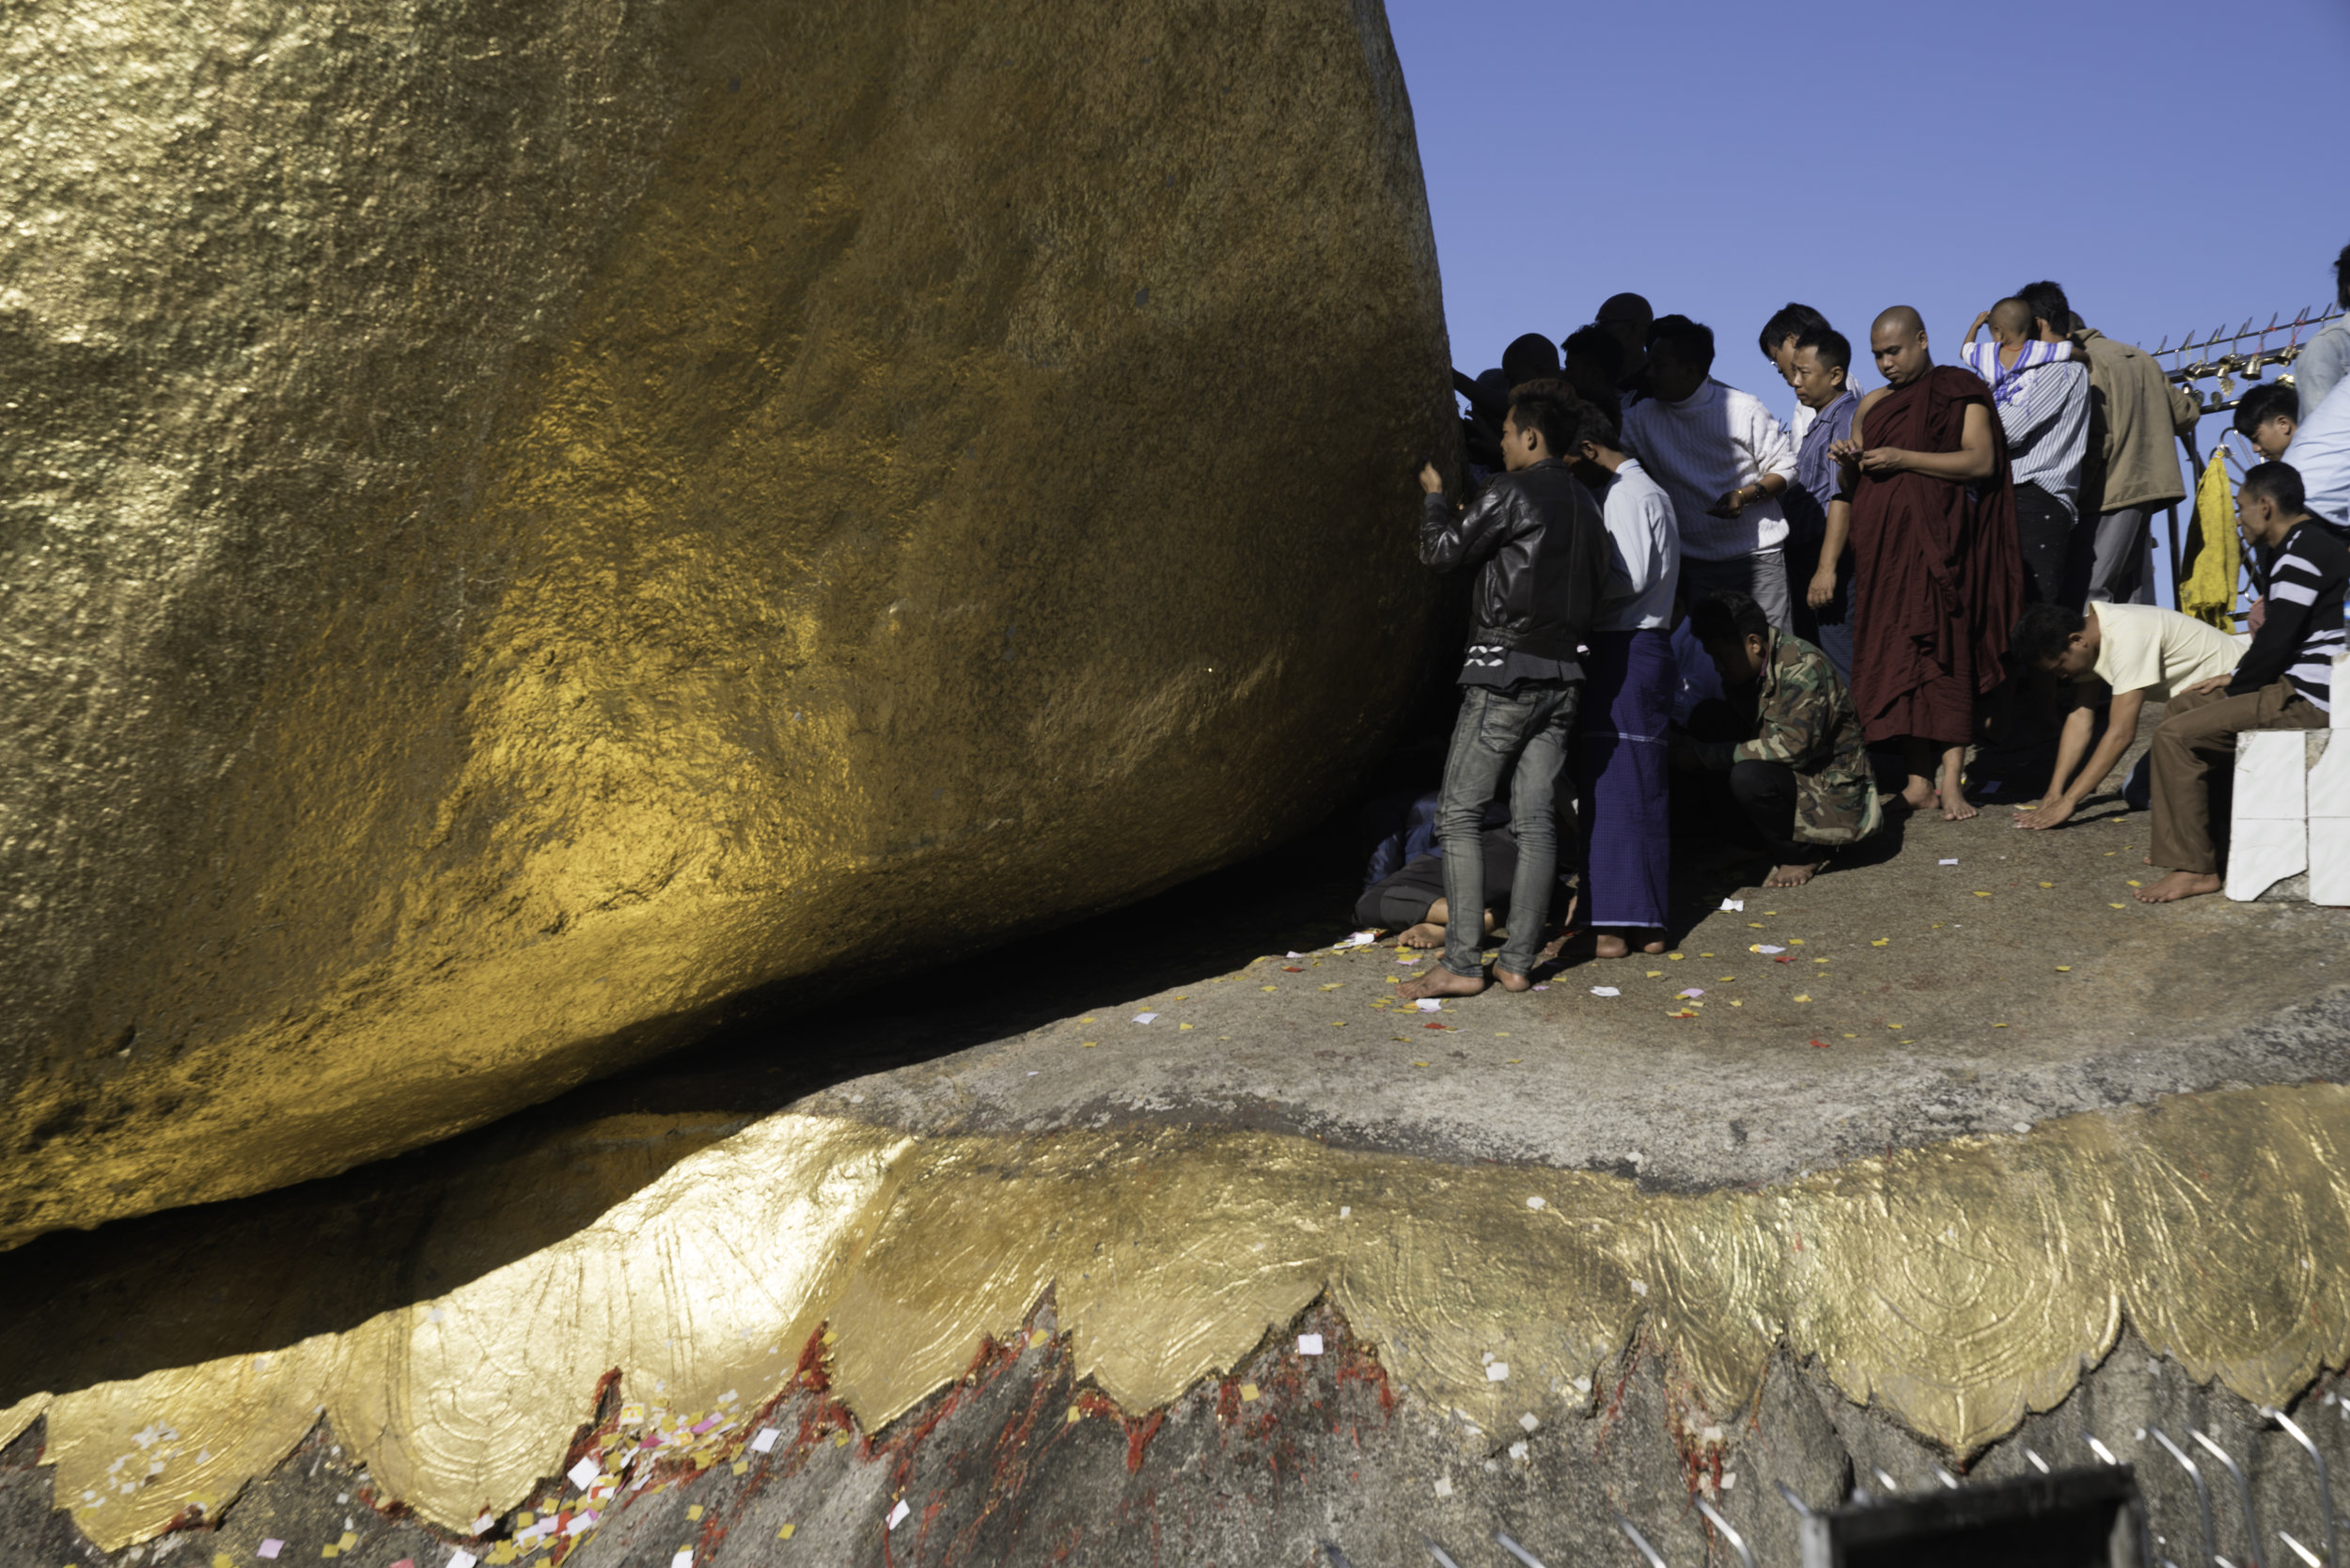 Pilgrims and devotees pasting pure gold leaves on the side of the golden rock.